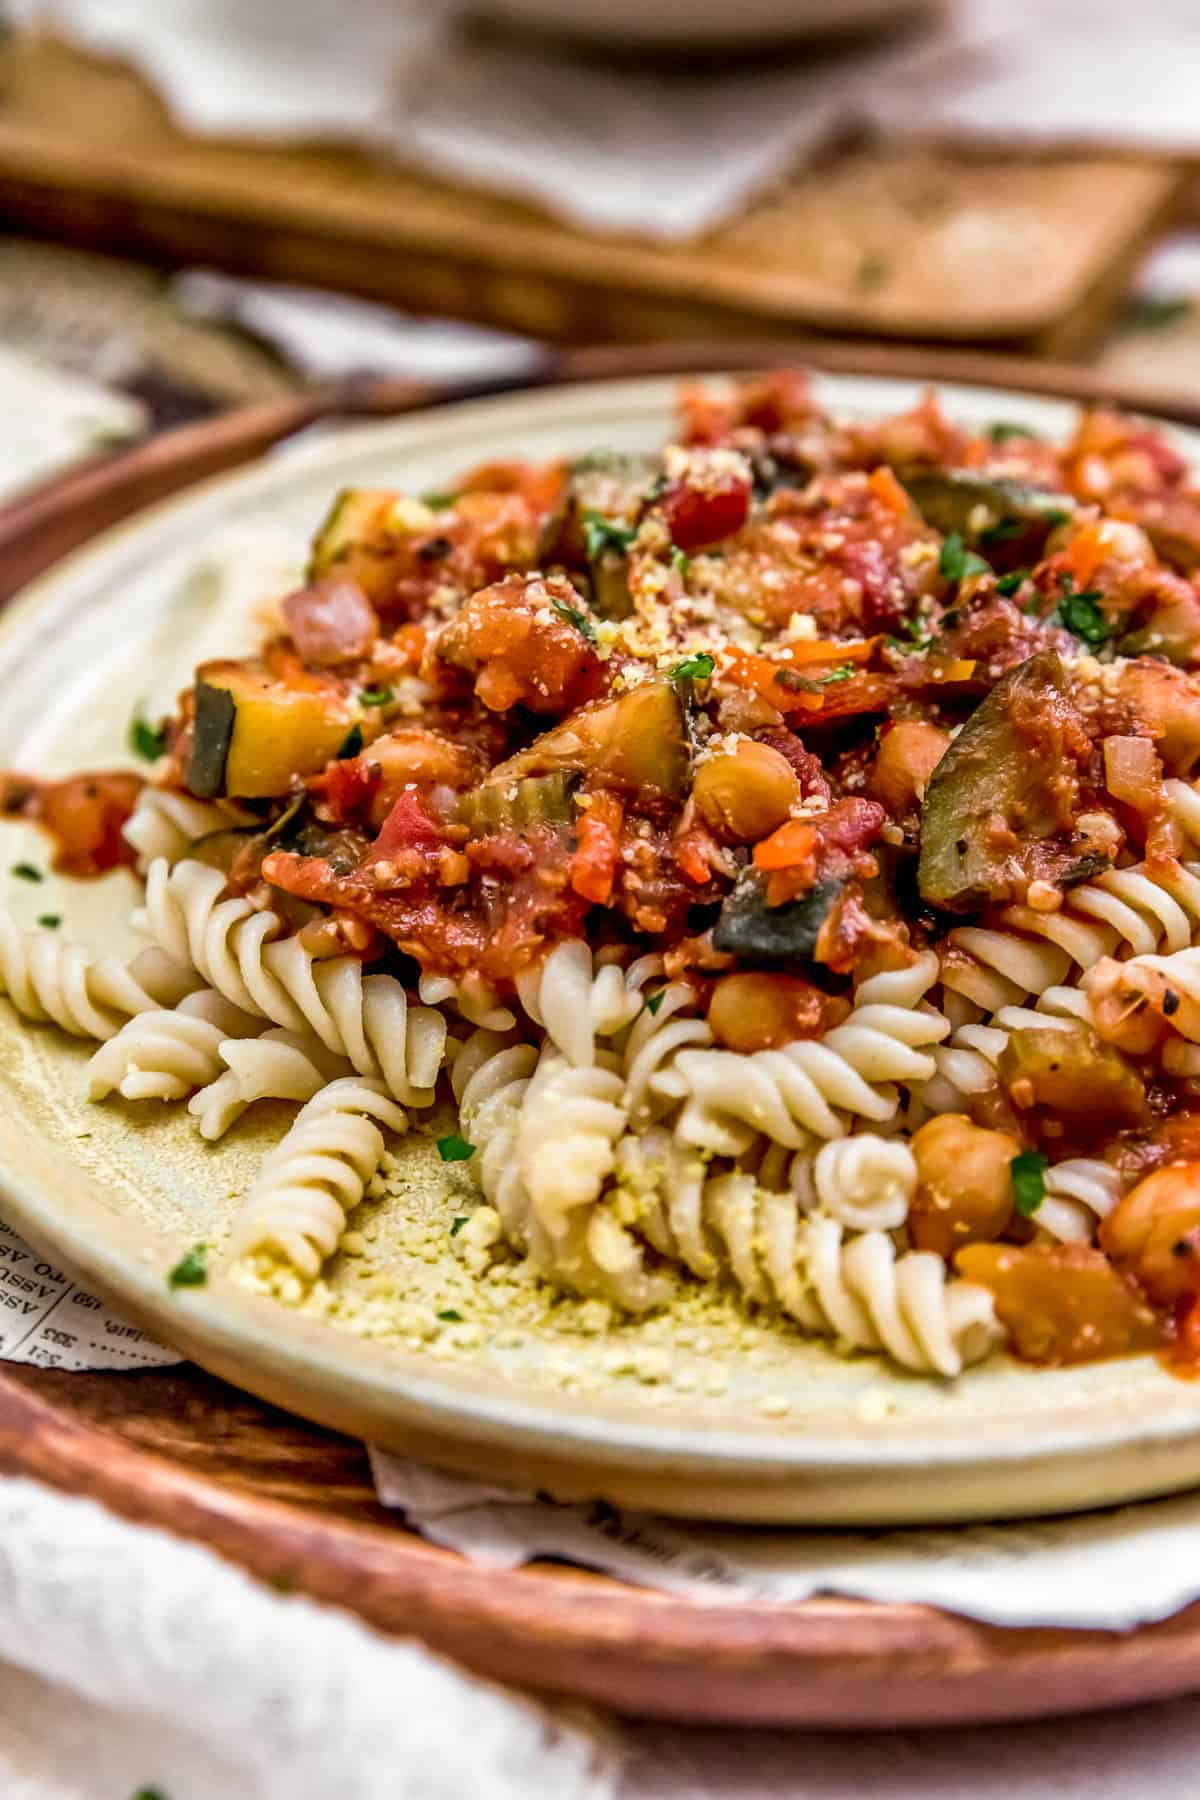 Close up of Italian Stewed Zucchini and Chickpeas over pasta